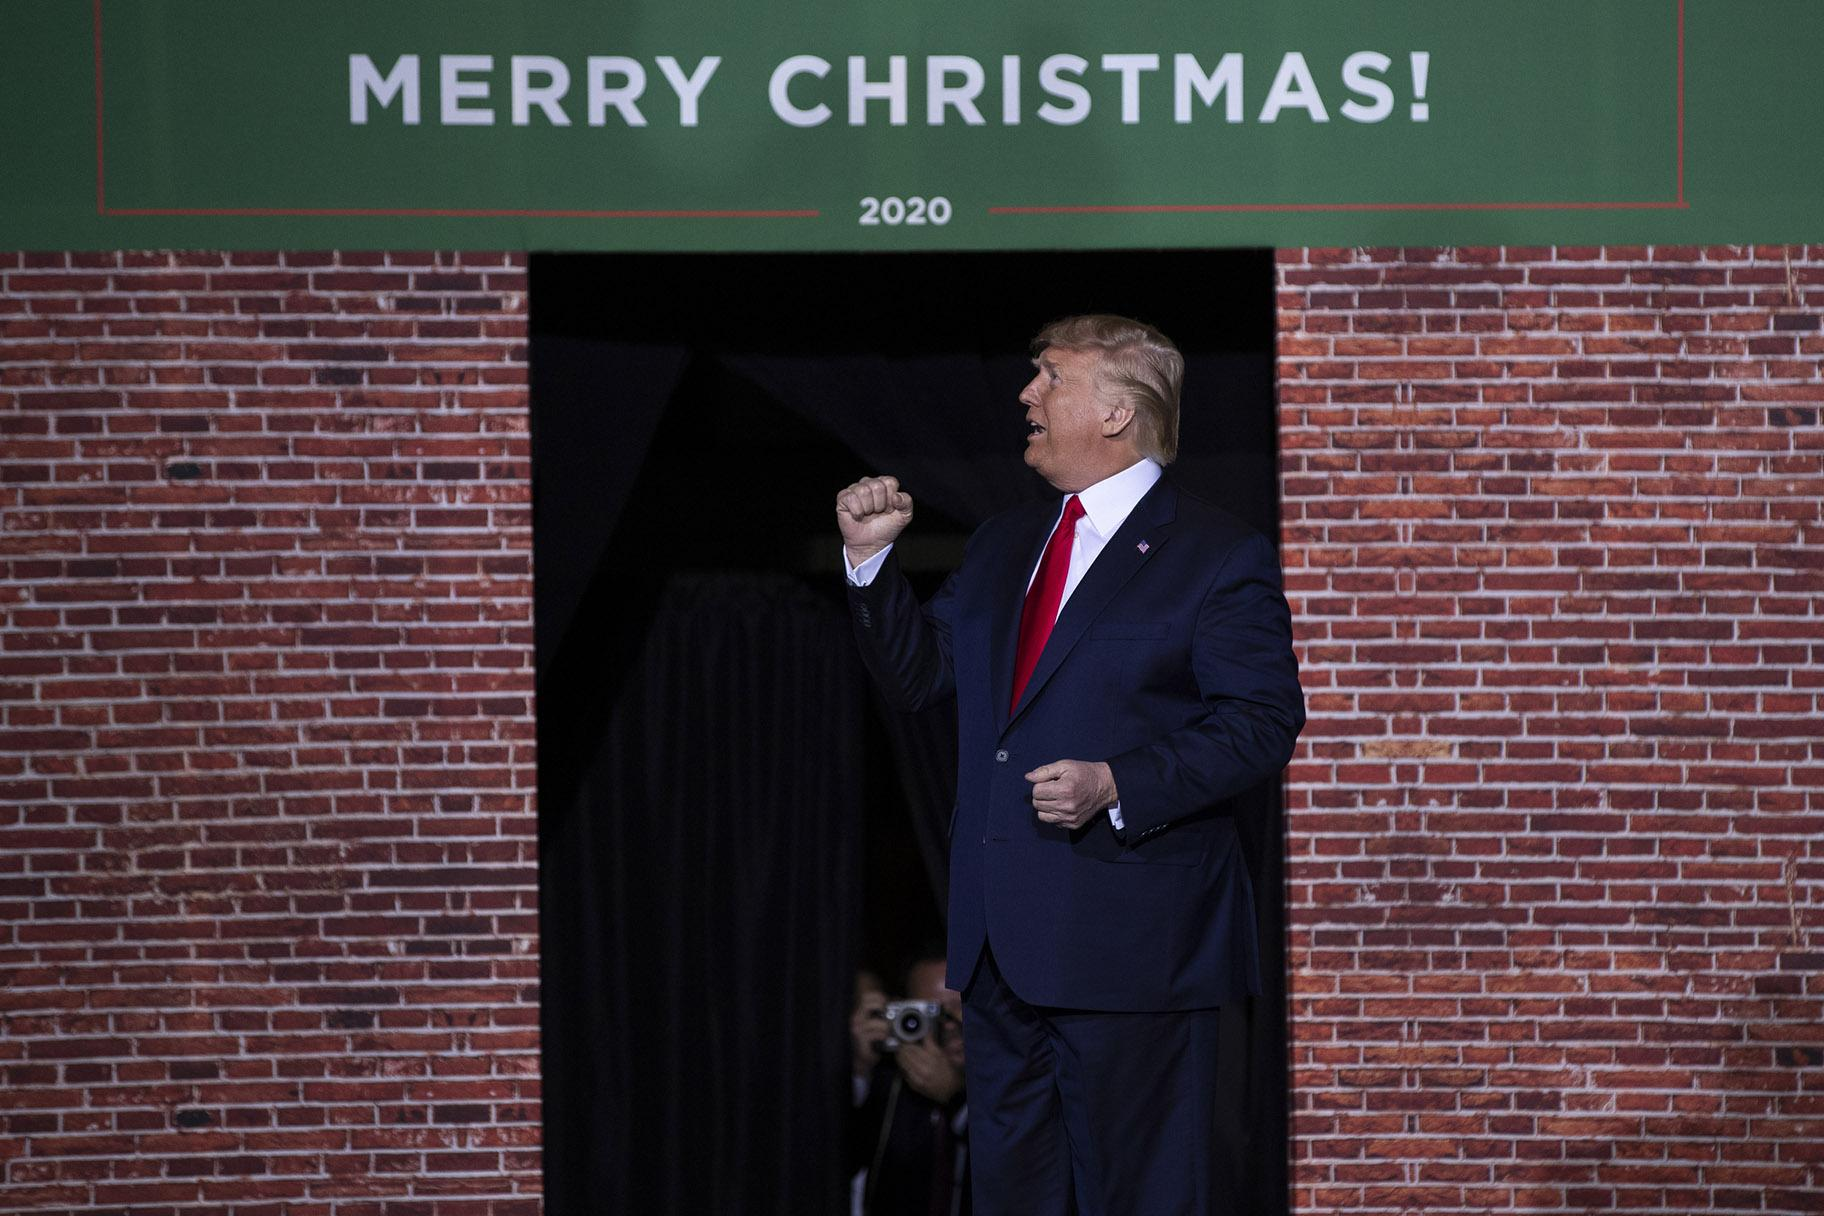 In this Wednesday, Dec. 18, 2019 file photo, President Donald Trump speaks during a campaign rally at Kellogg Arena, Wednesday, Dec. 18, 2019, in Battle Creek, Mich. (AP Photo / Evan Vucci, File)